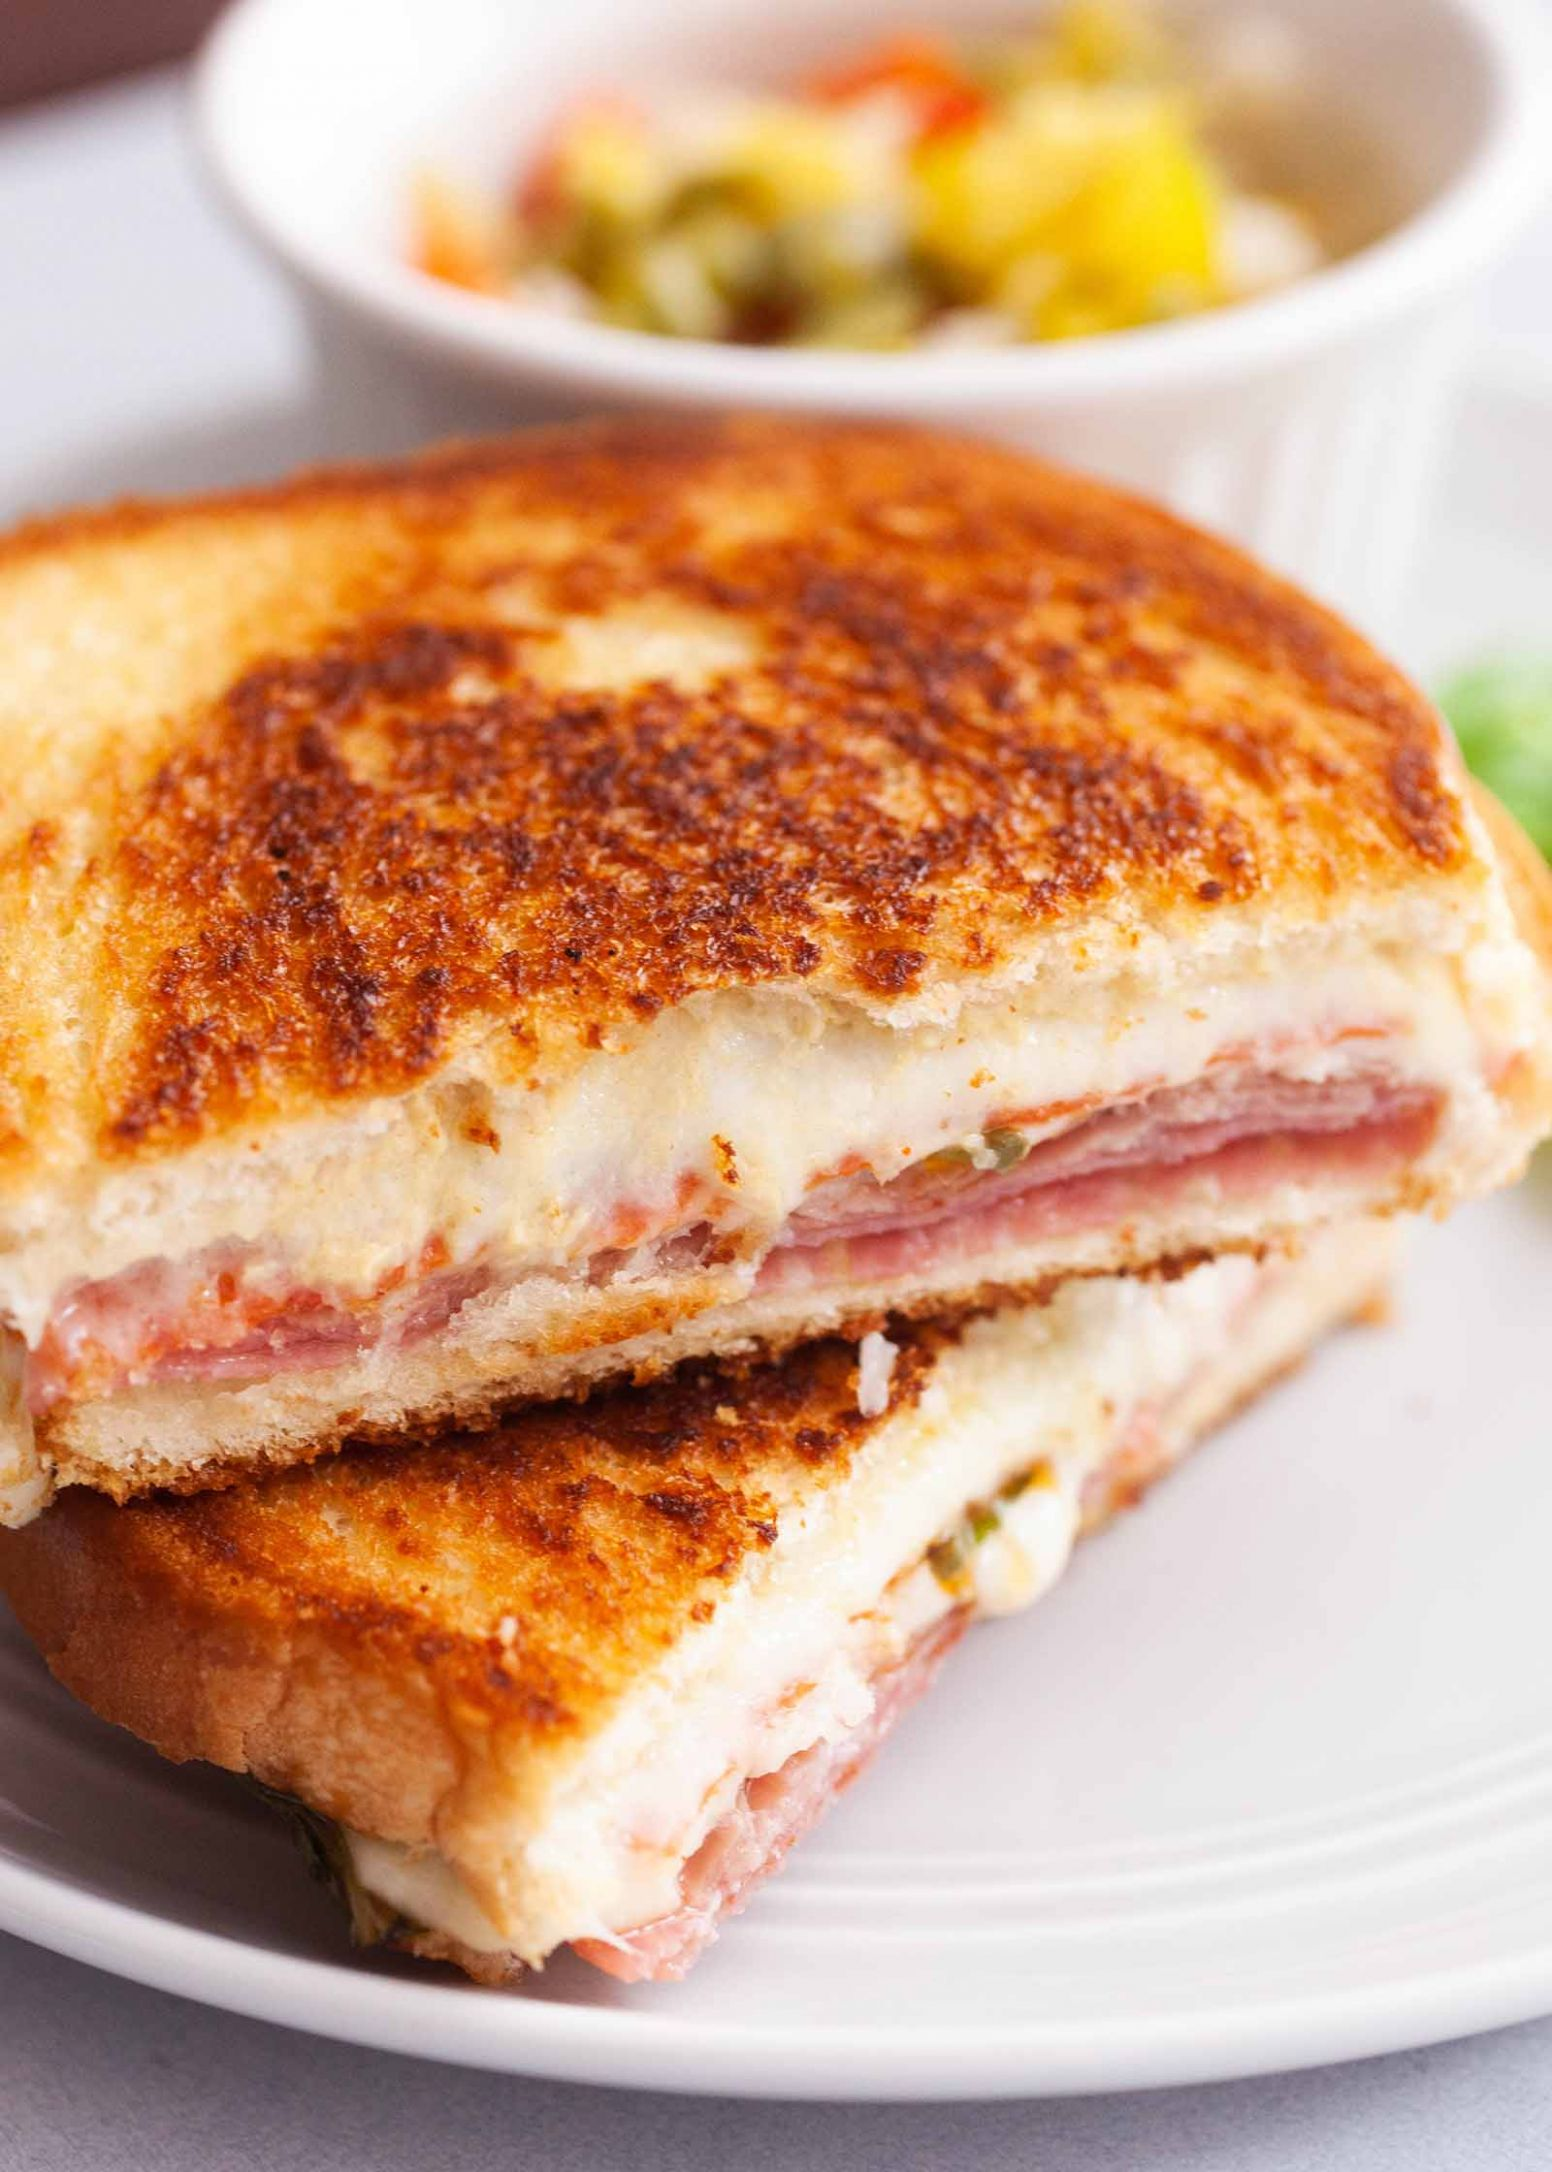 Italian Grilled Cheese Sandwiches - Sandwich Recipes Ham And Cheese